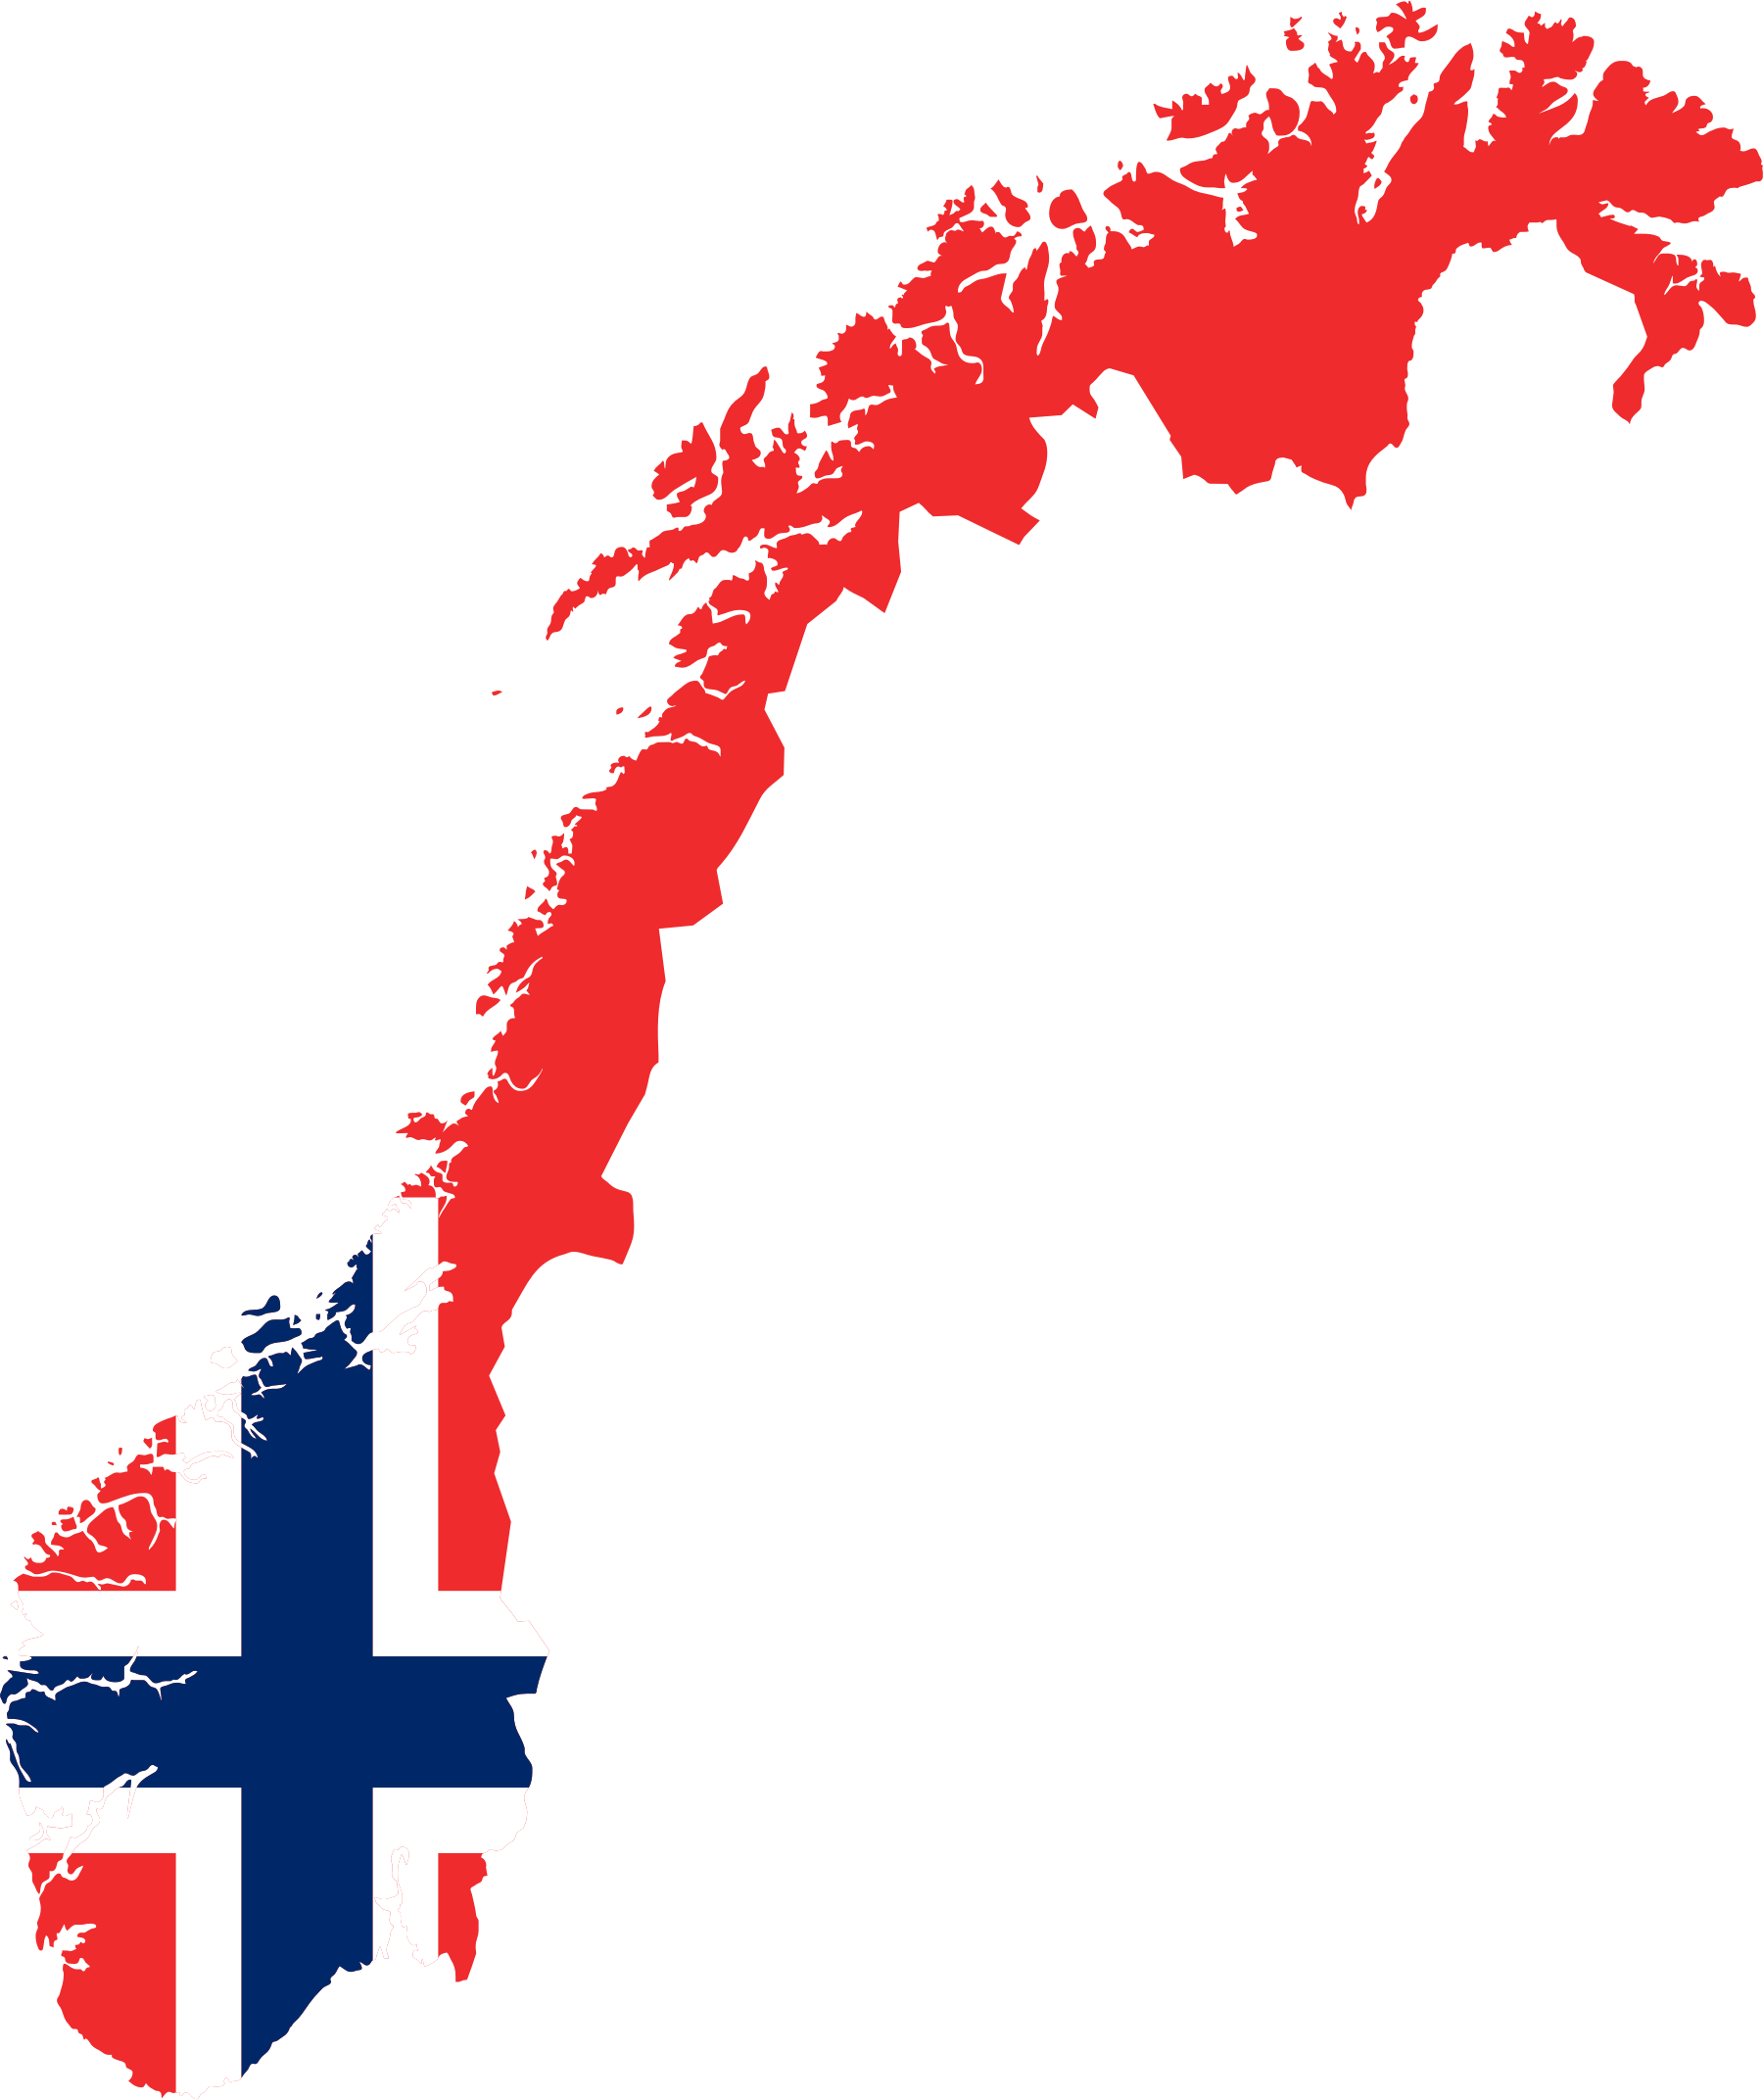 Flag Of Norway Scandinavia Europe Organizational Structure - Map of europe and scandinavian countries